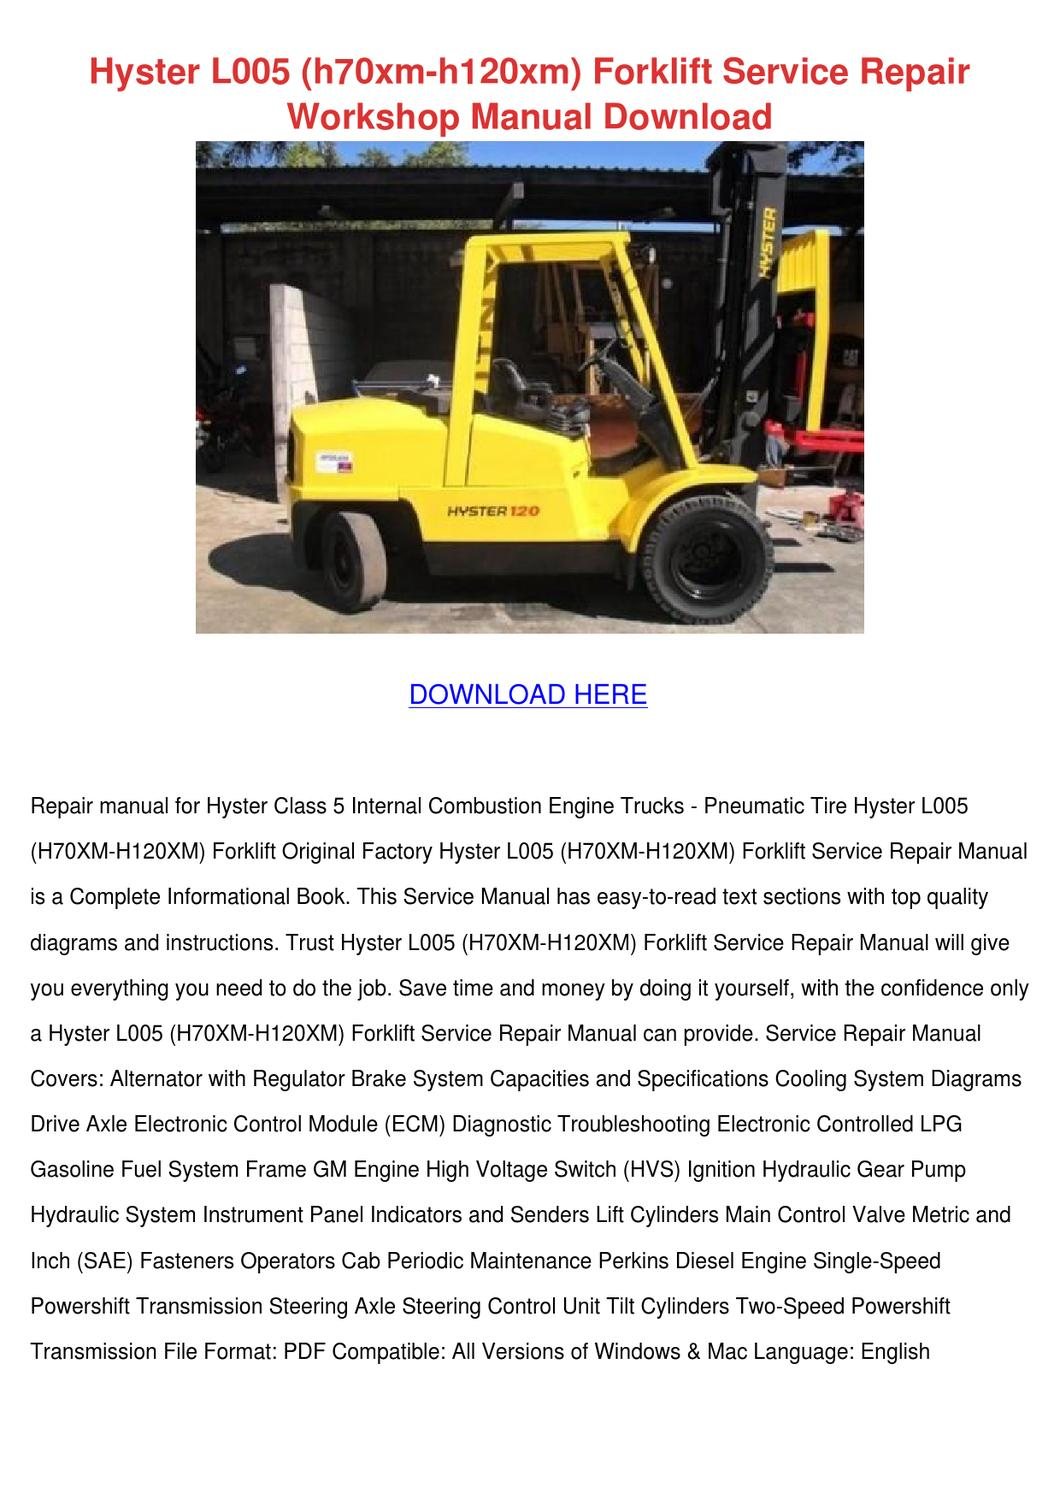 Hyster H120xm Manual Auto Electrical Wiring Diagram Alfa Romeo 147 Free Download